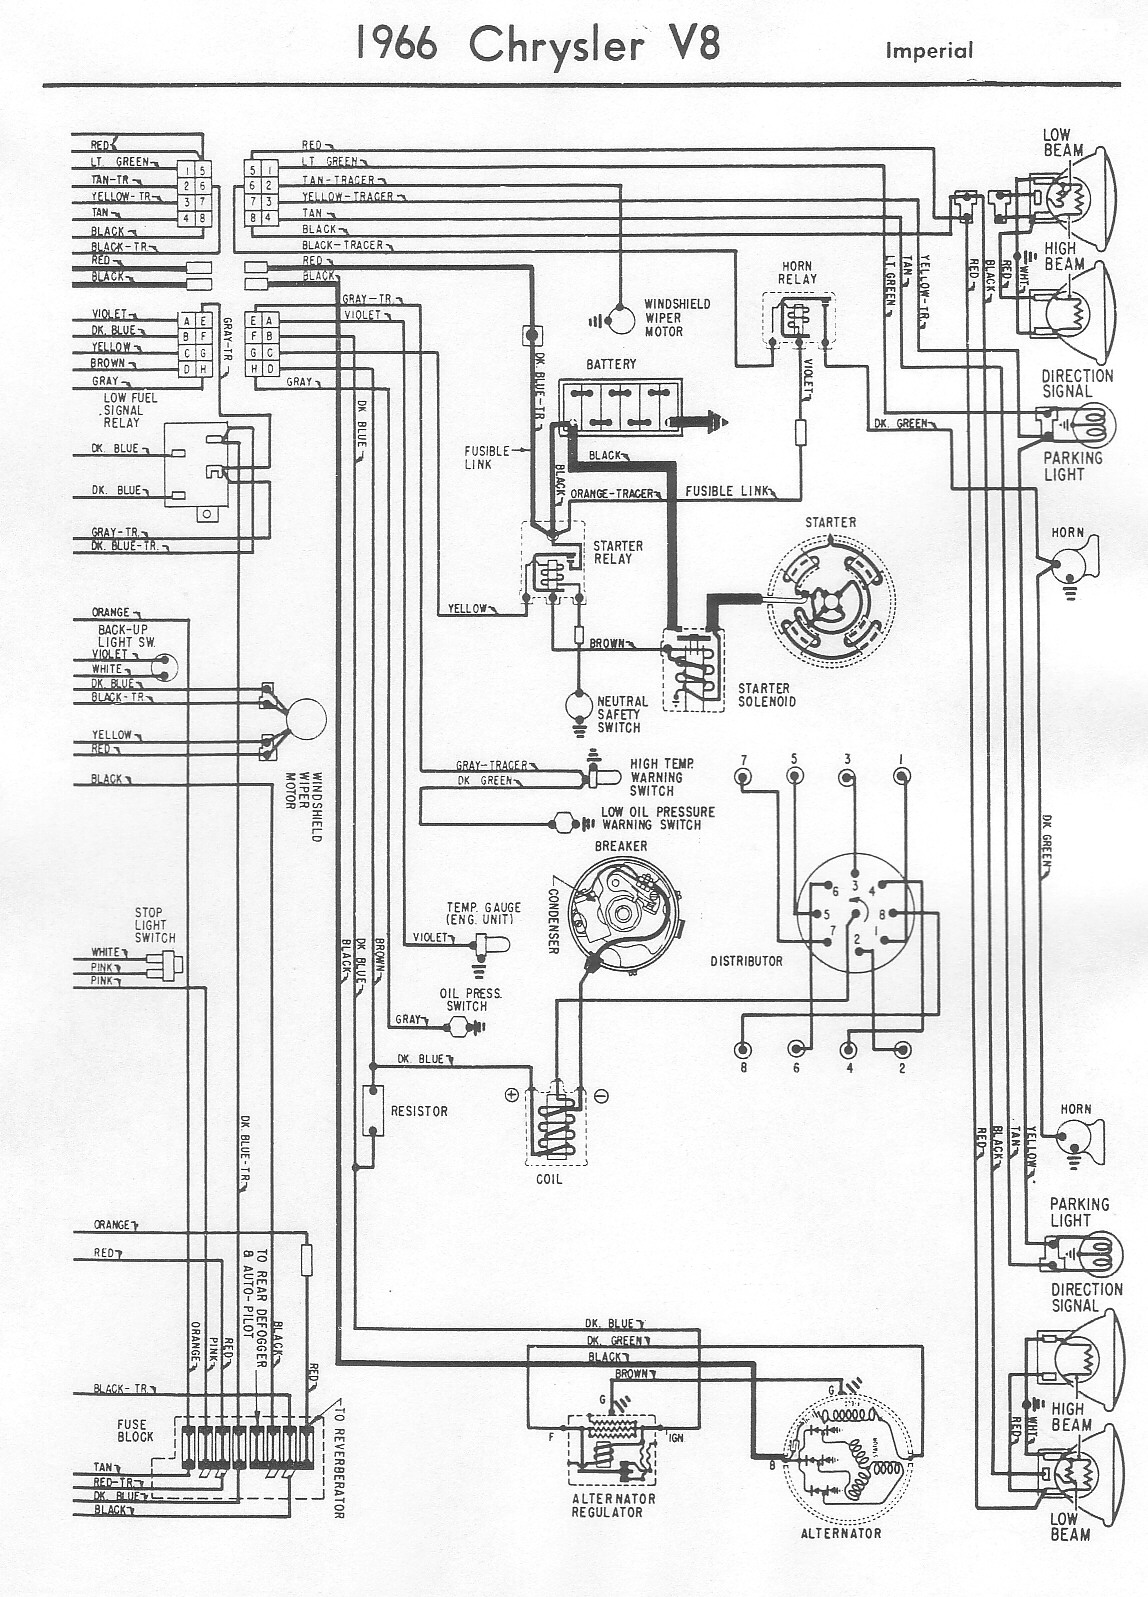 1970 road runner wiring diagram